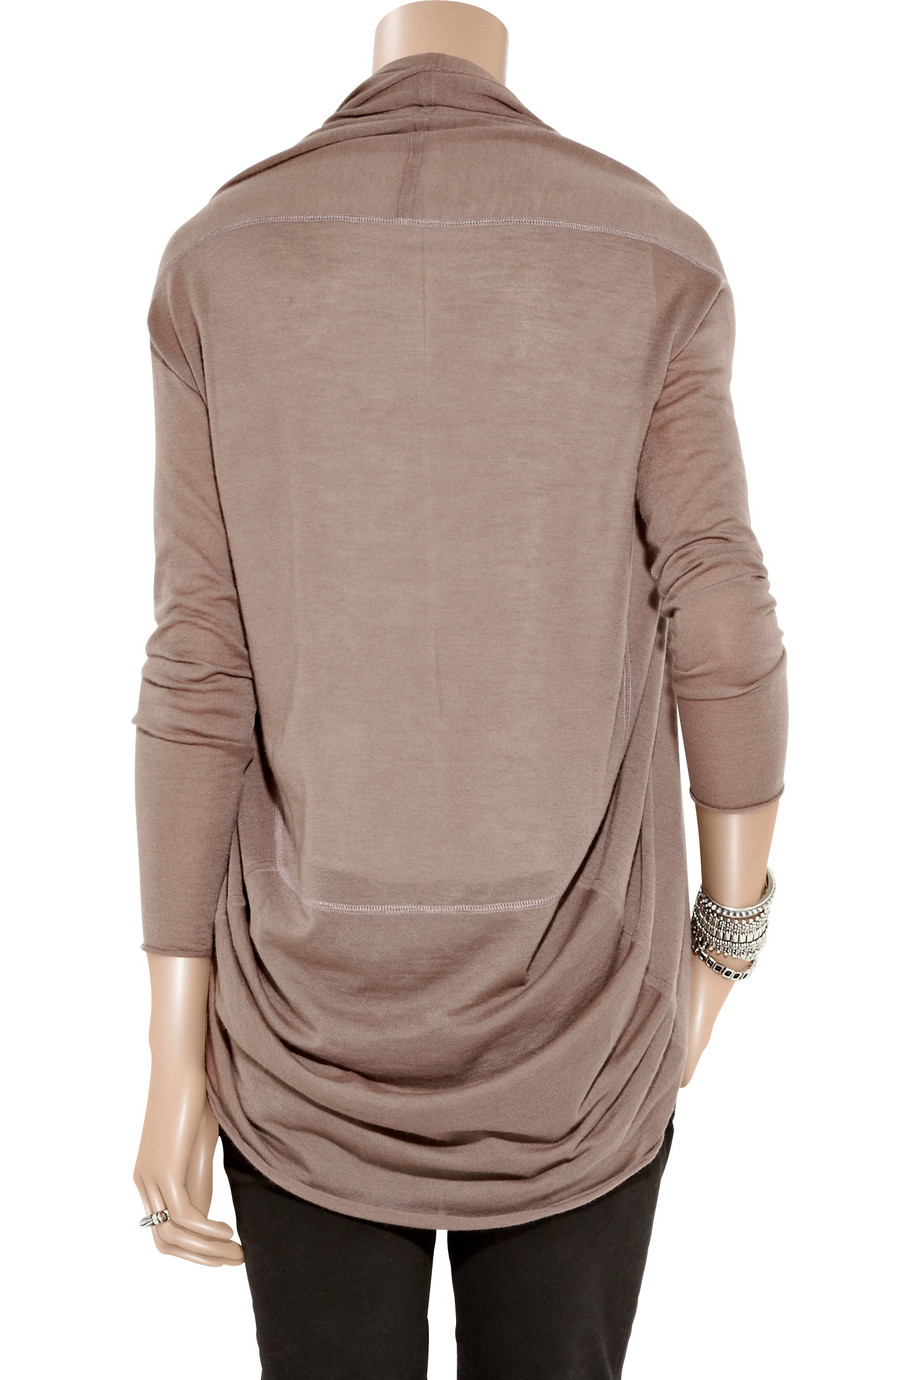 Duffy Cashmere Cocoon Cardigan in Brown | Lyst